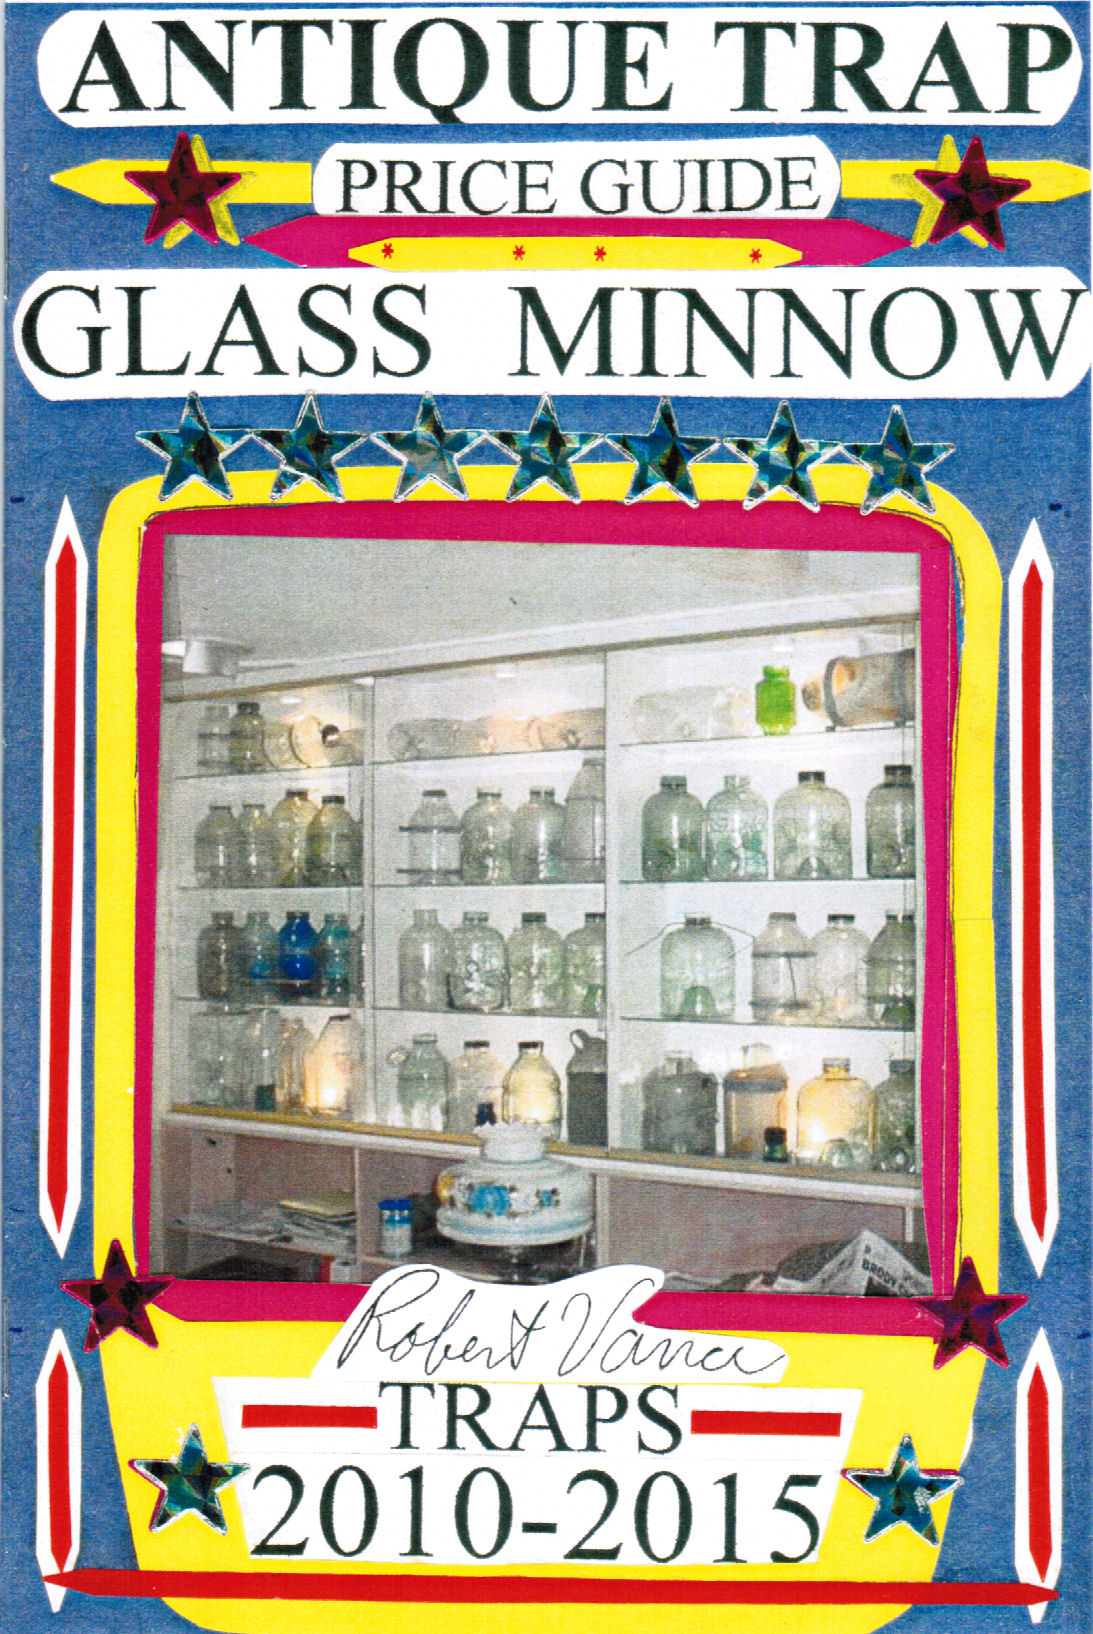 Antique Trap Price Guide - Glass Minnow